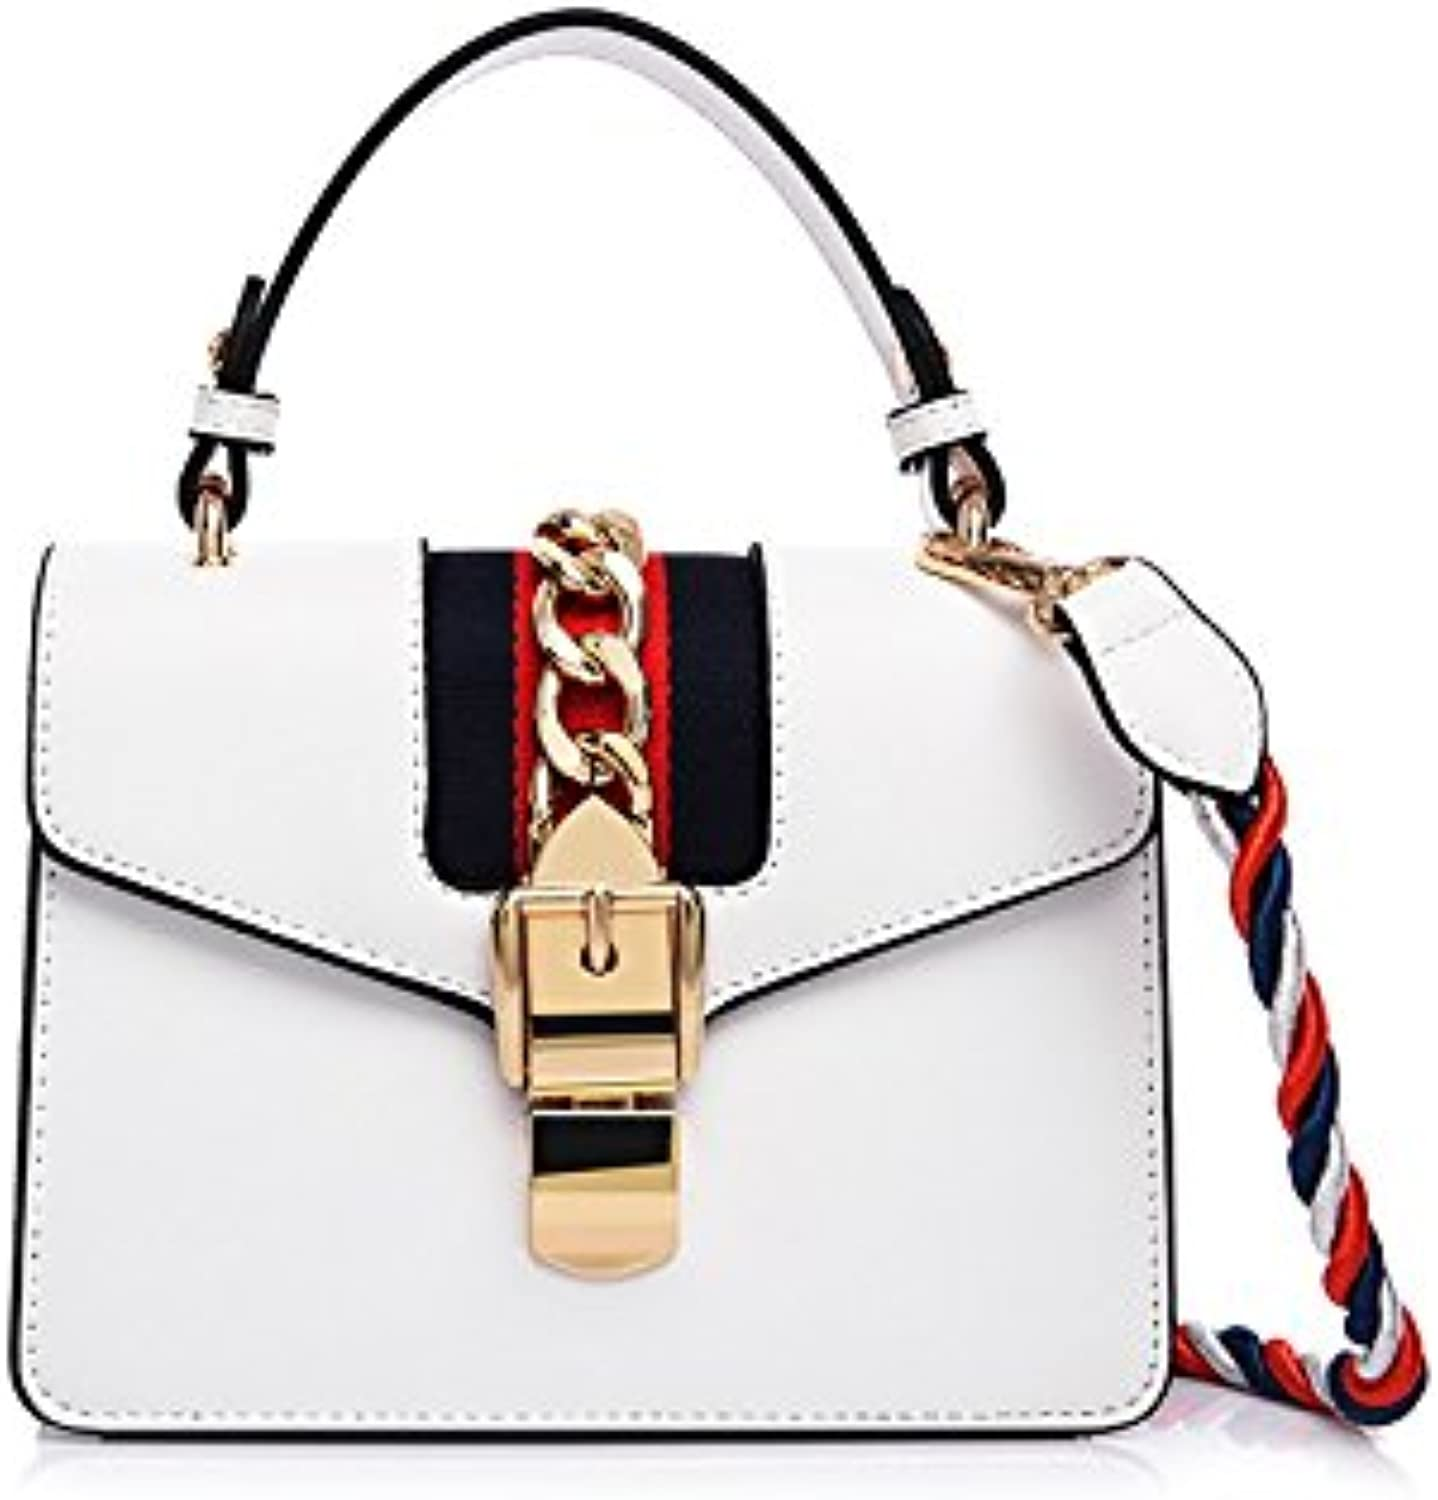 AI BAO Women's Classic Cross Body Bag Hand Bag Fashion Party Bag